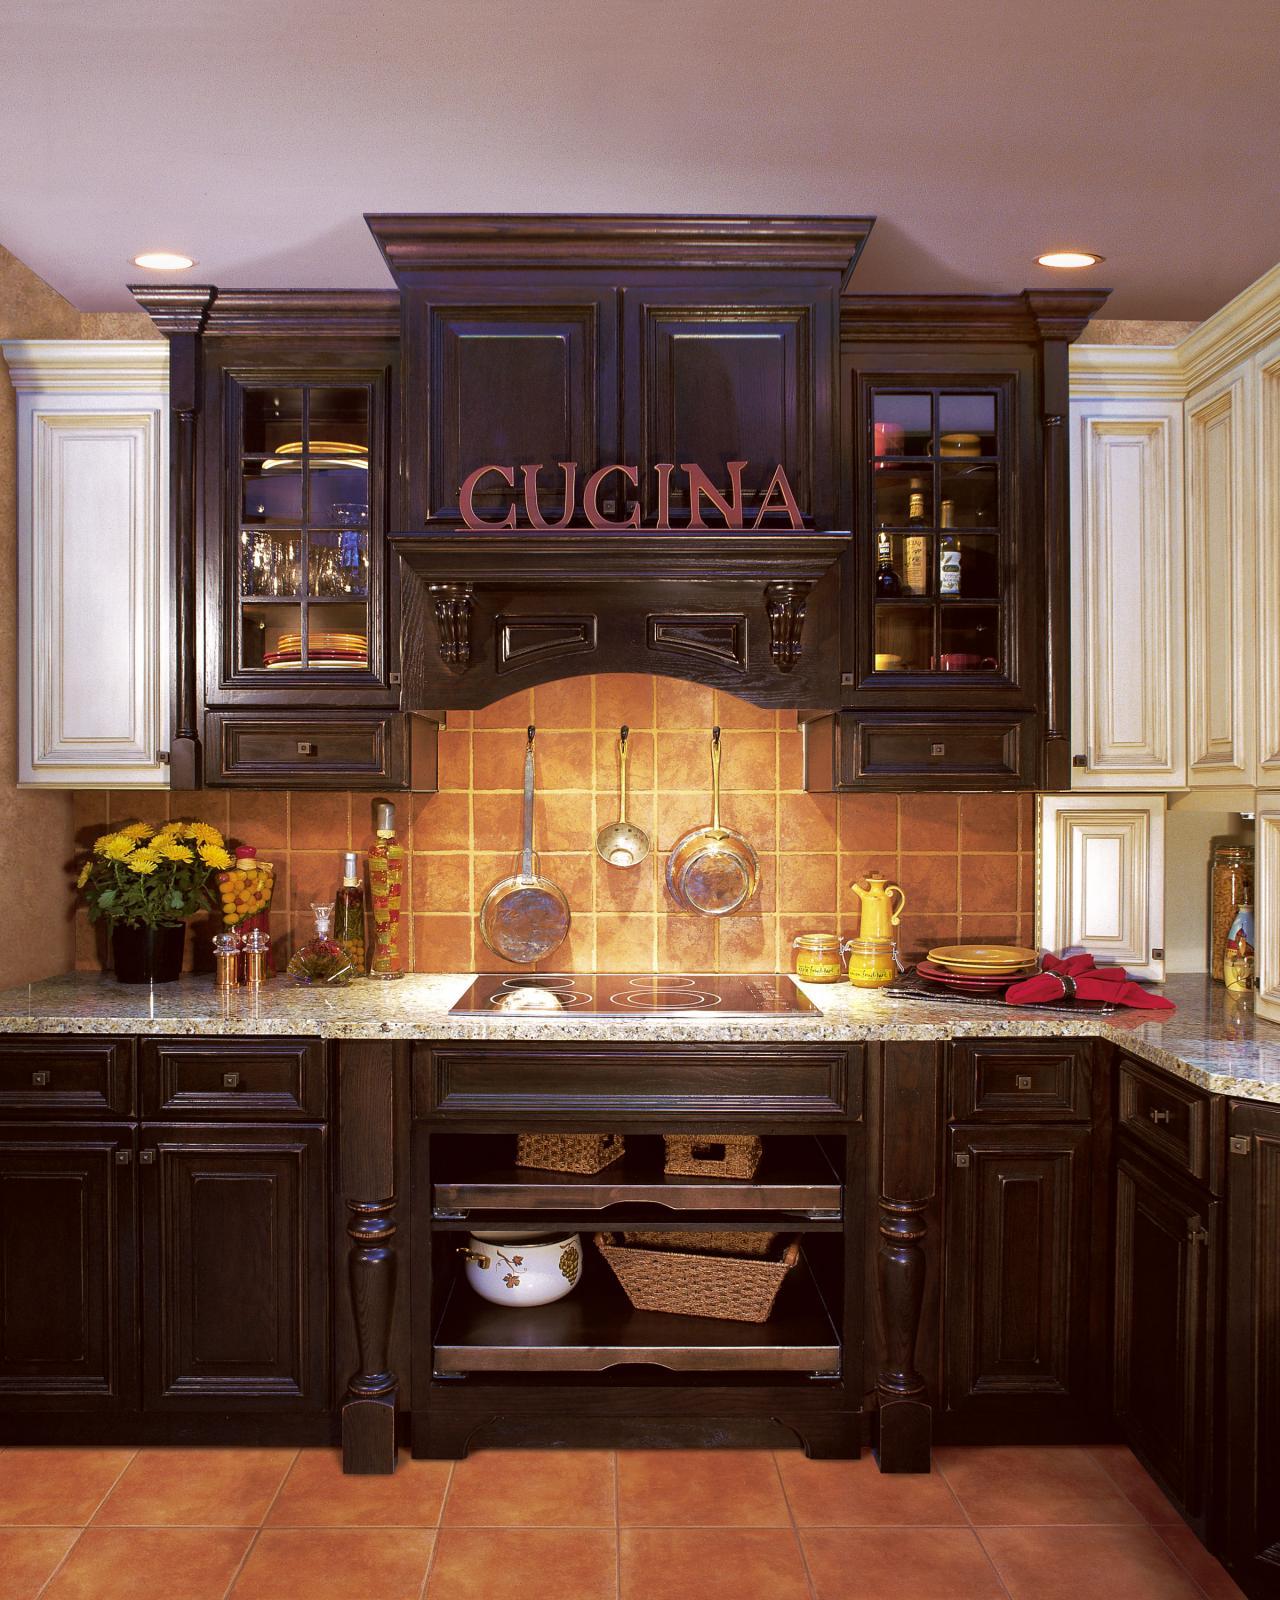 Omega Kitchen Cabinets: Graham Interiors, LLC